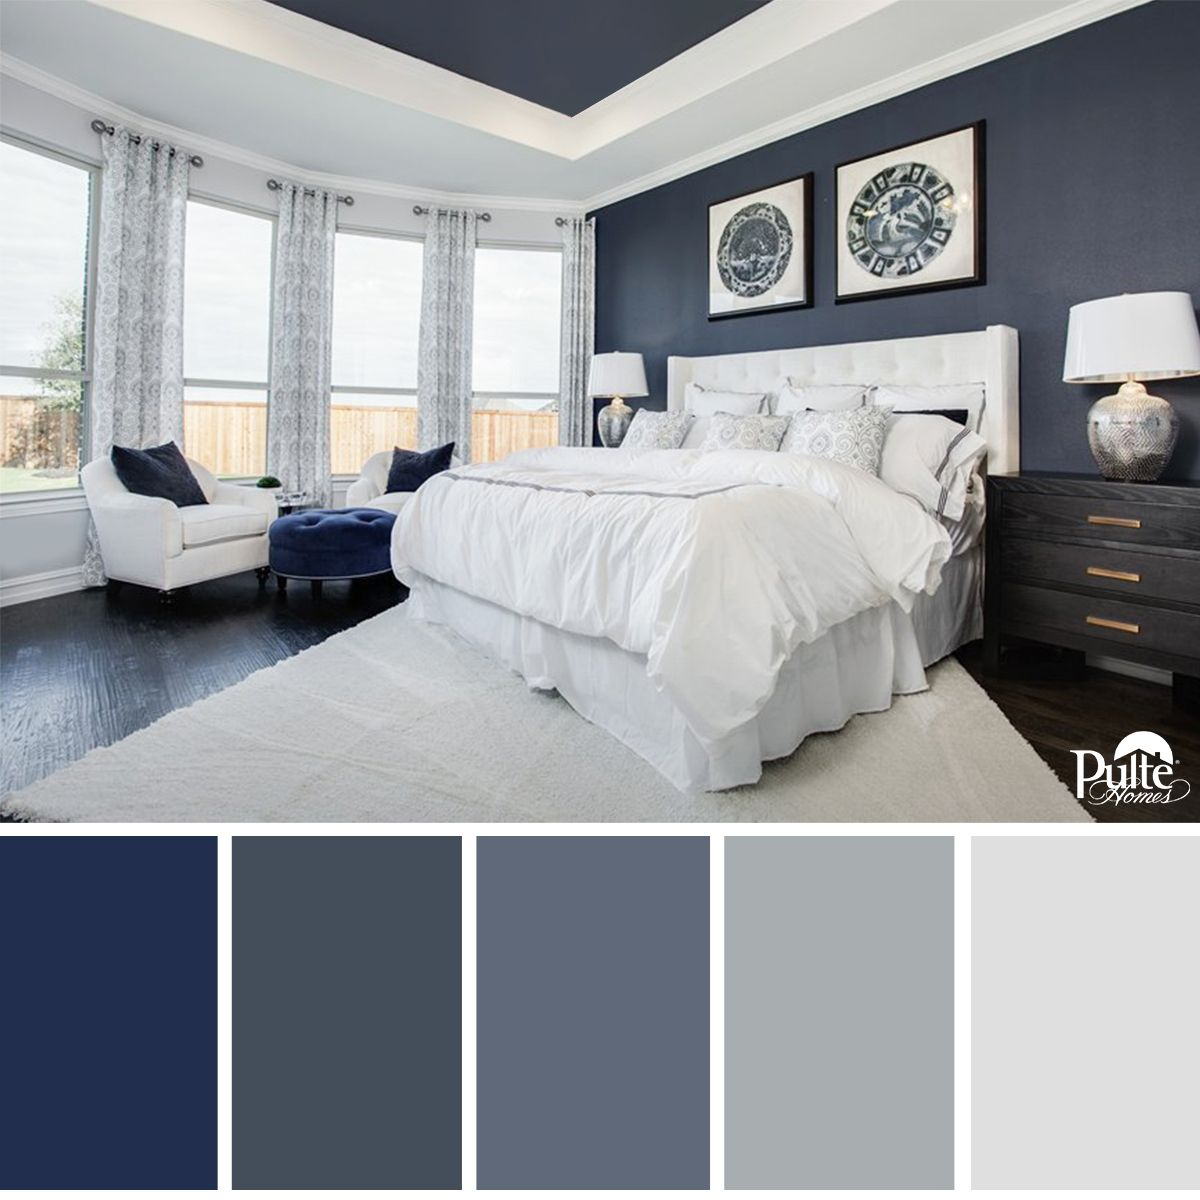 Bedroom blue color ideas - This Bedroom Design Has The Right Idea The Rich Blue Color Palette And Decor Create